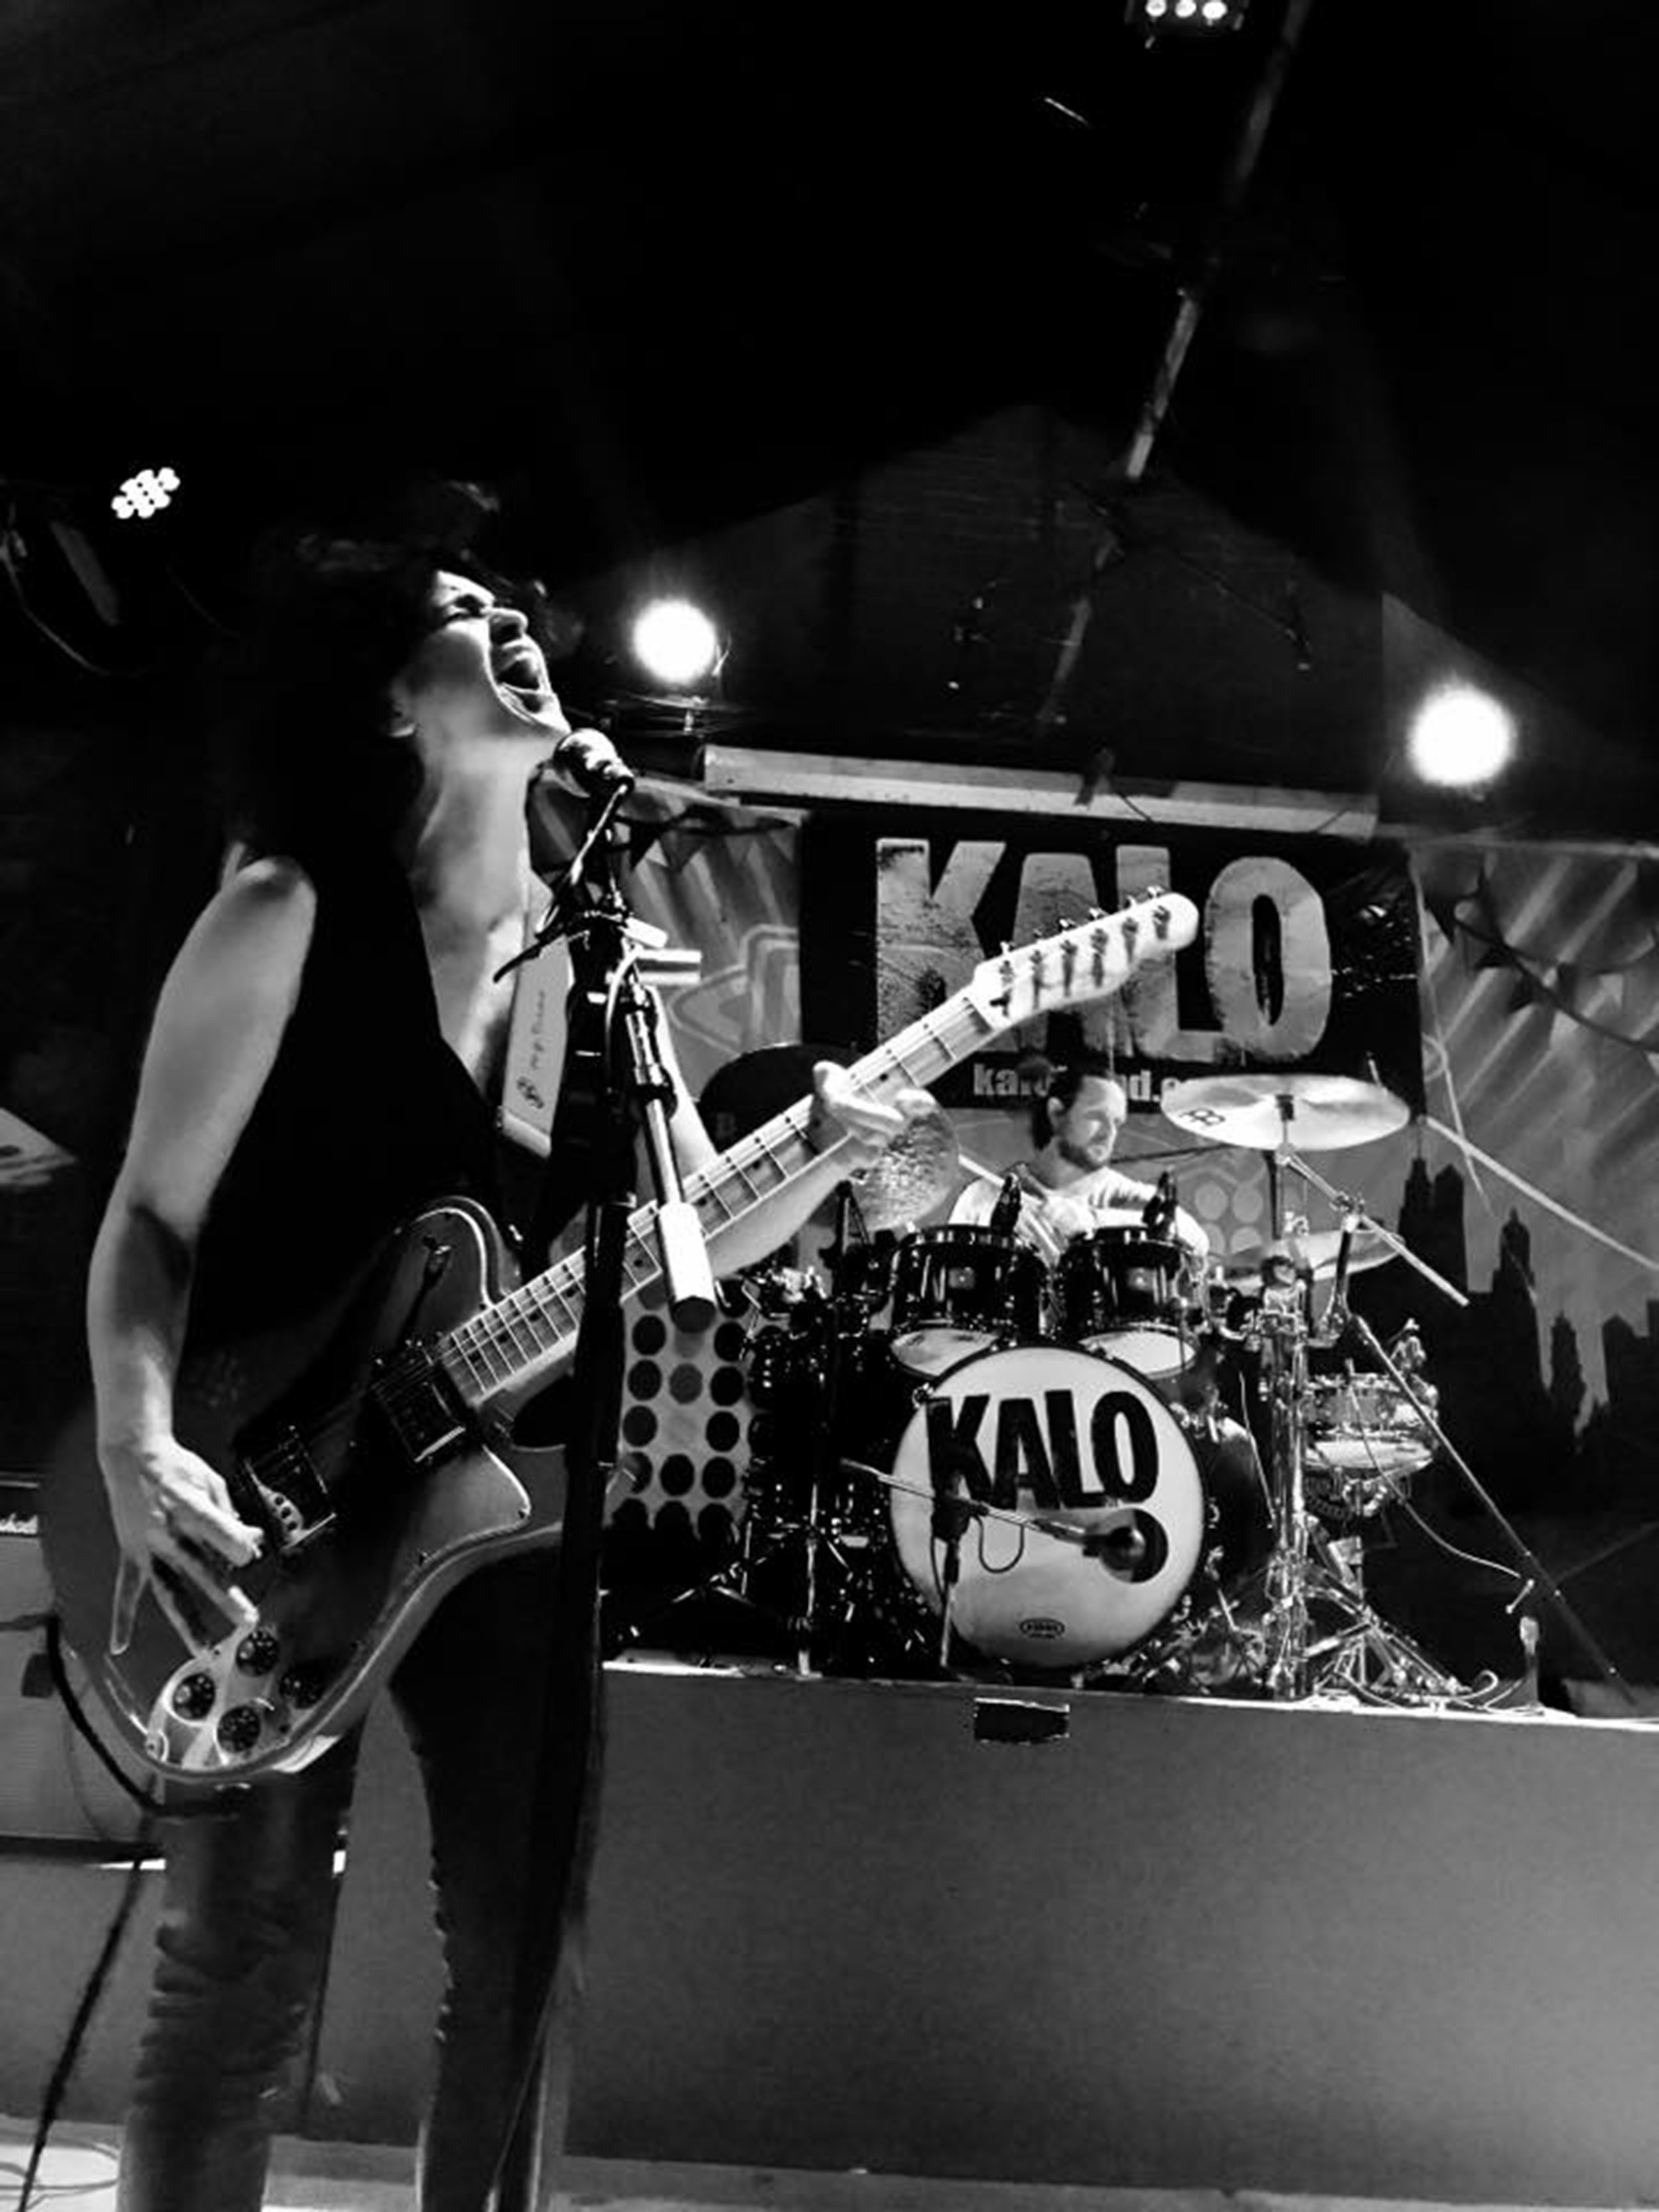 Bat-Or Kalo and Mike Alexander of the band KALO